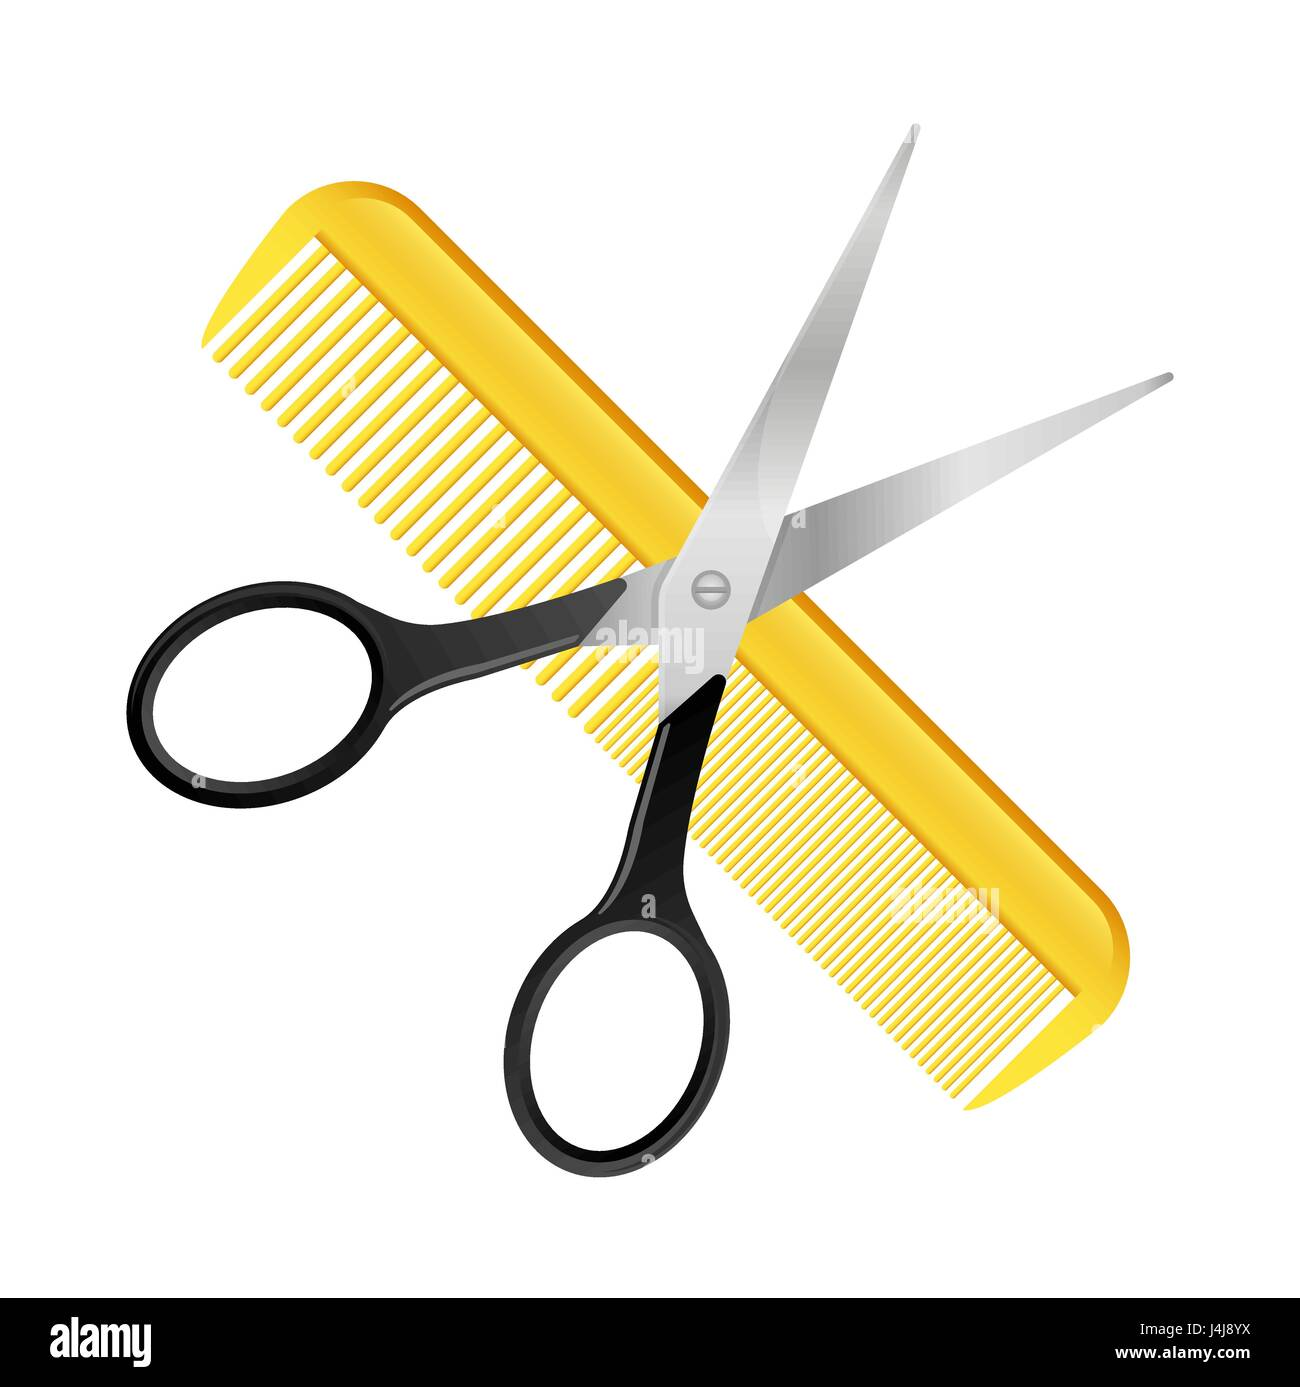 crossed scissors and comb isolated on white barbershop hairdresser